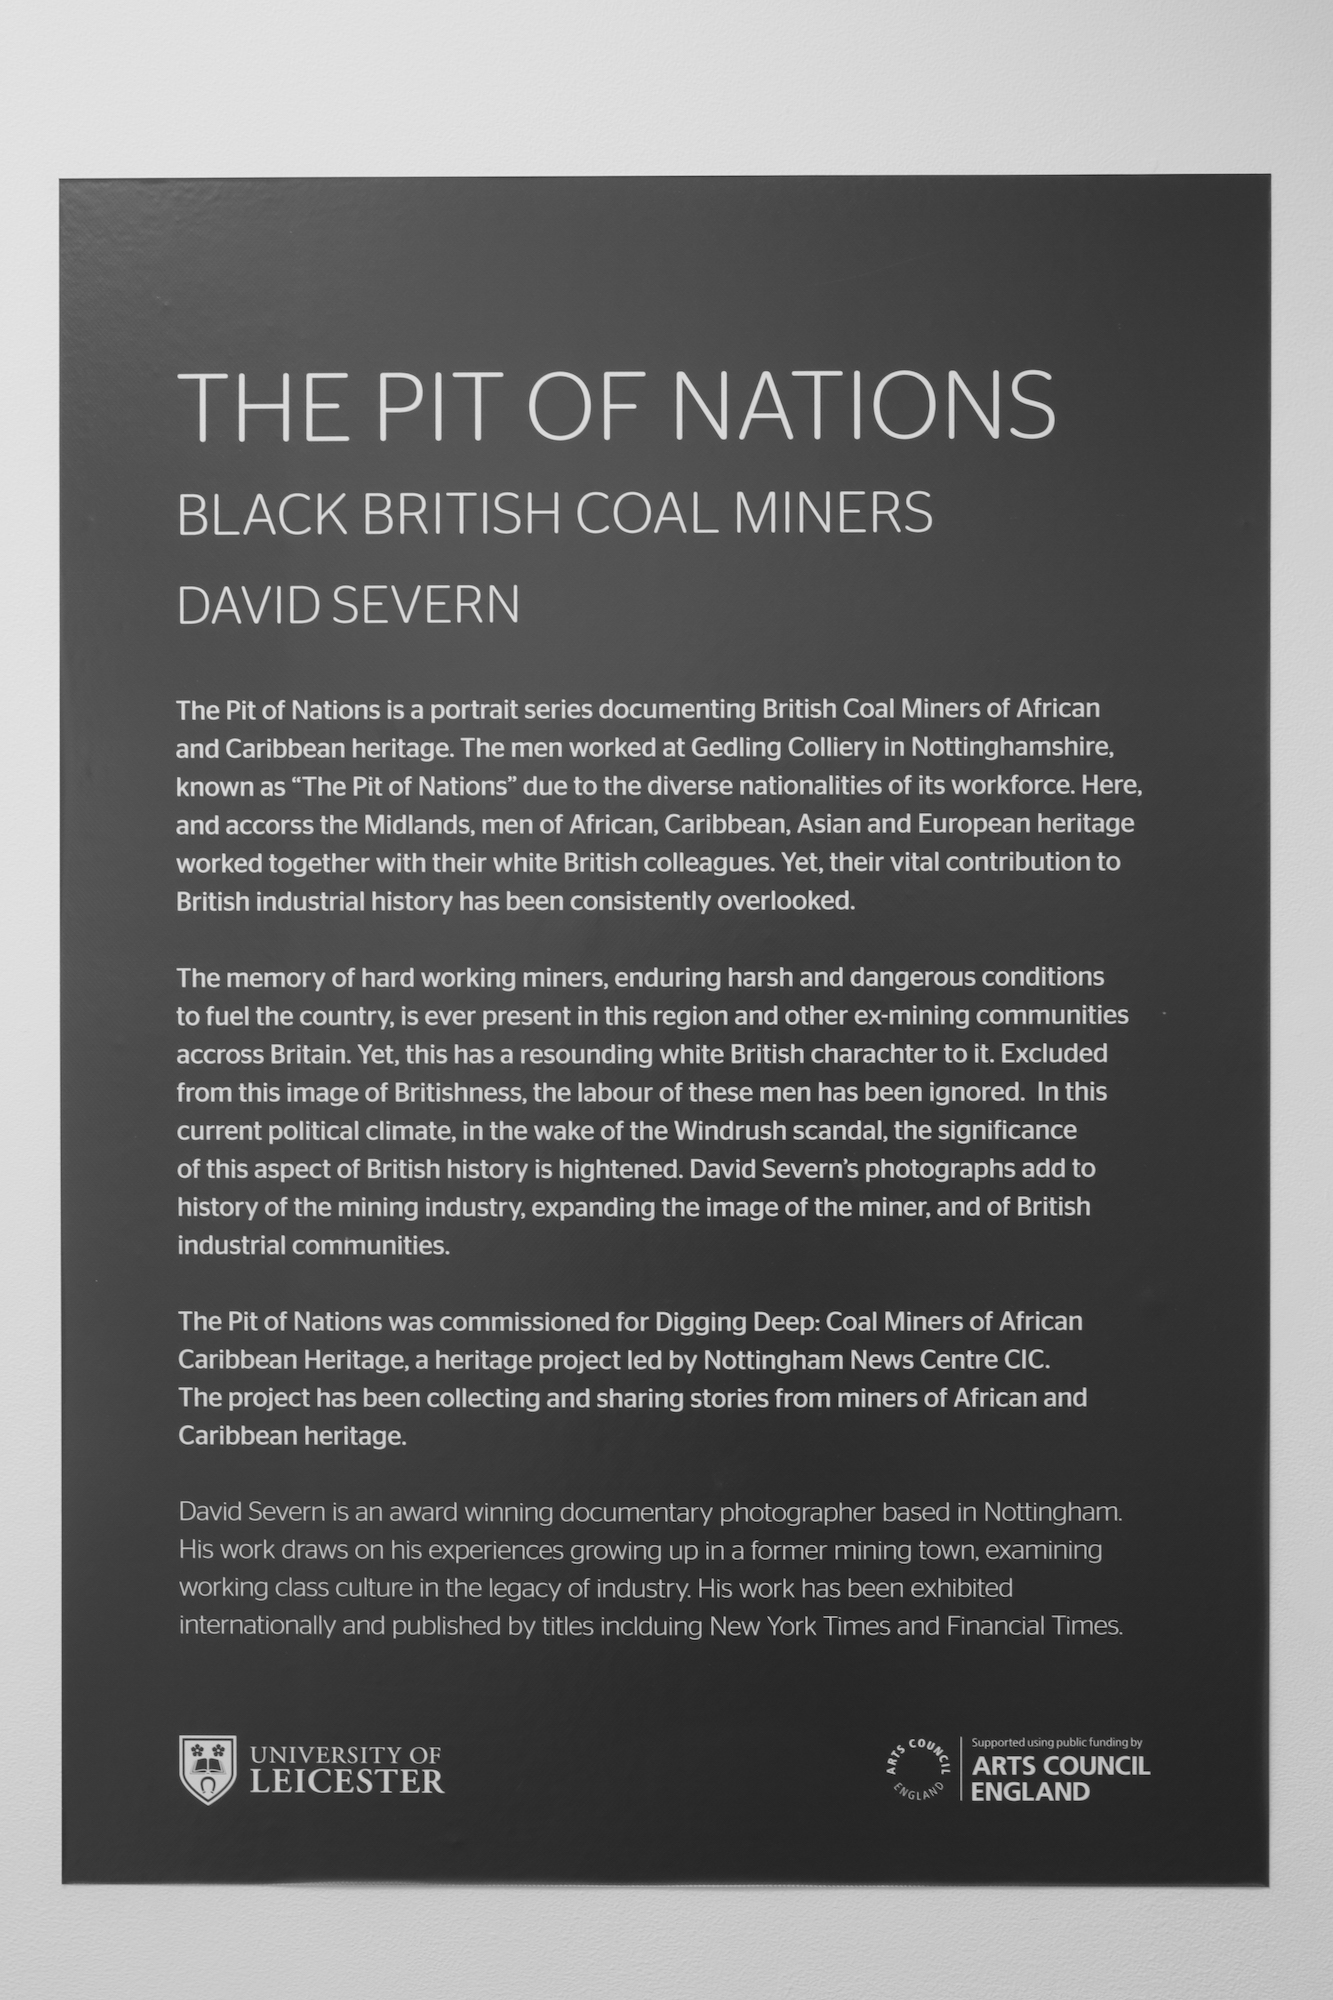 The Pit of Nations: Black British Coal Miners exhibition, Attenborough Arts Centre, Leicester.